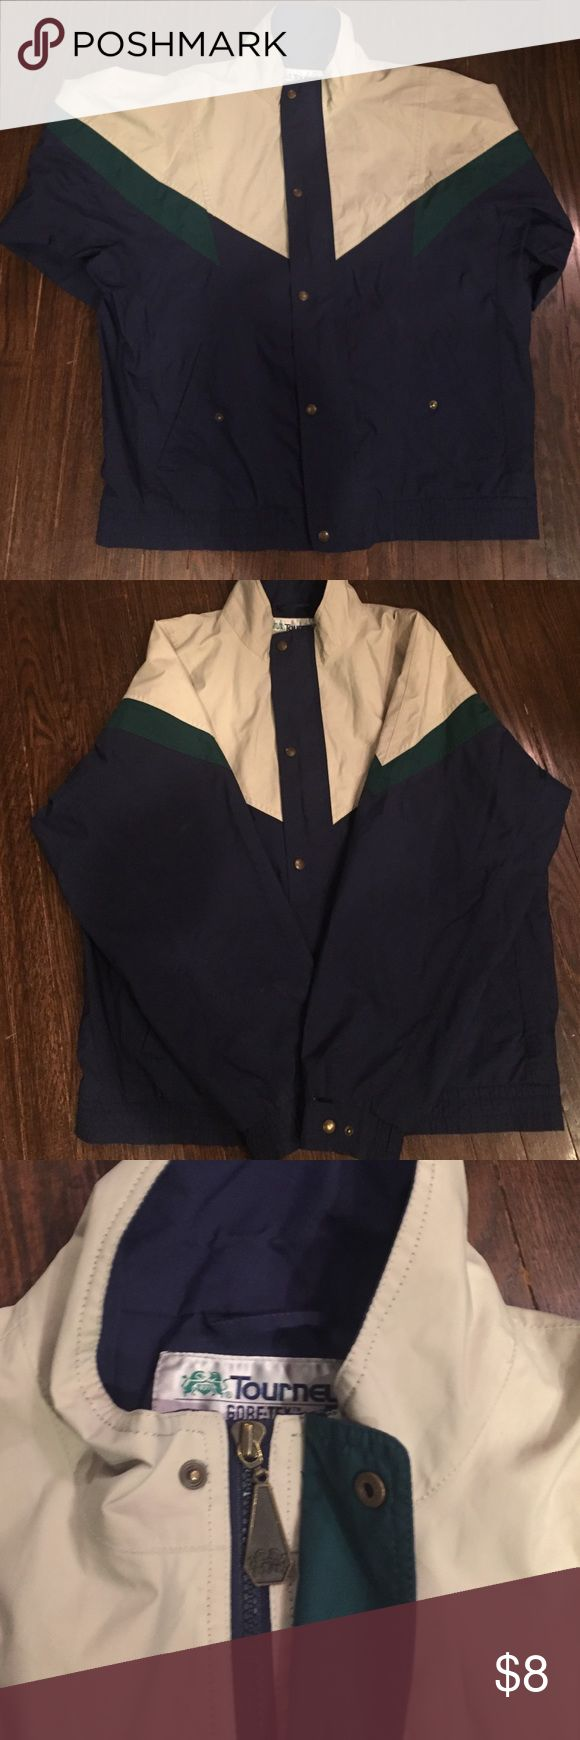 Rain jacket- excellent shape Rain jacket or golf jacket. In fantastic shape. Bargain price. Check out my rating and reviews- my clothes always exceed expectations. Smoke and dog free home. Buy with confidence. Jackets & Coats